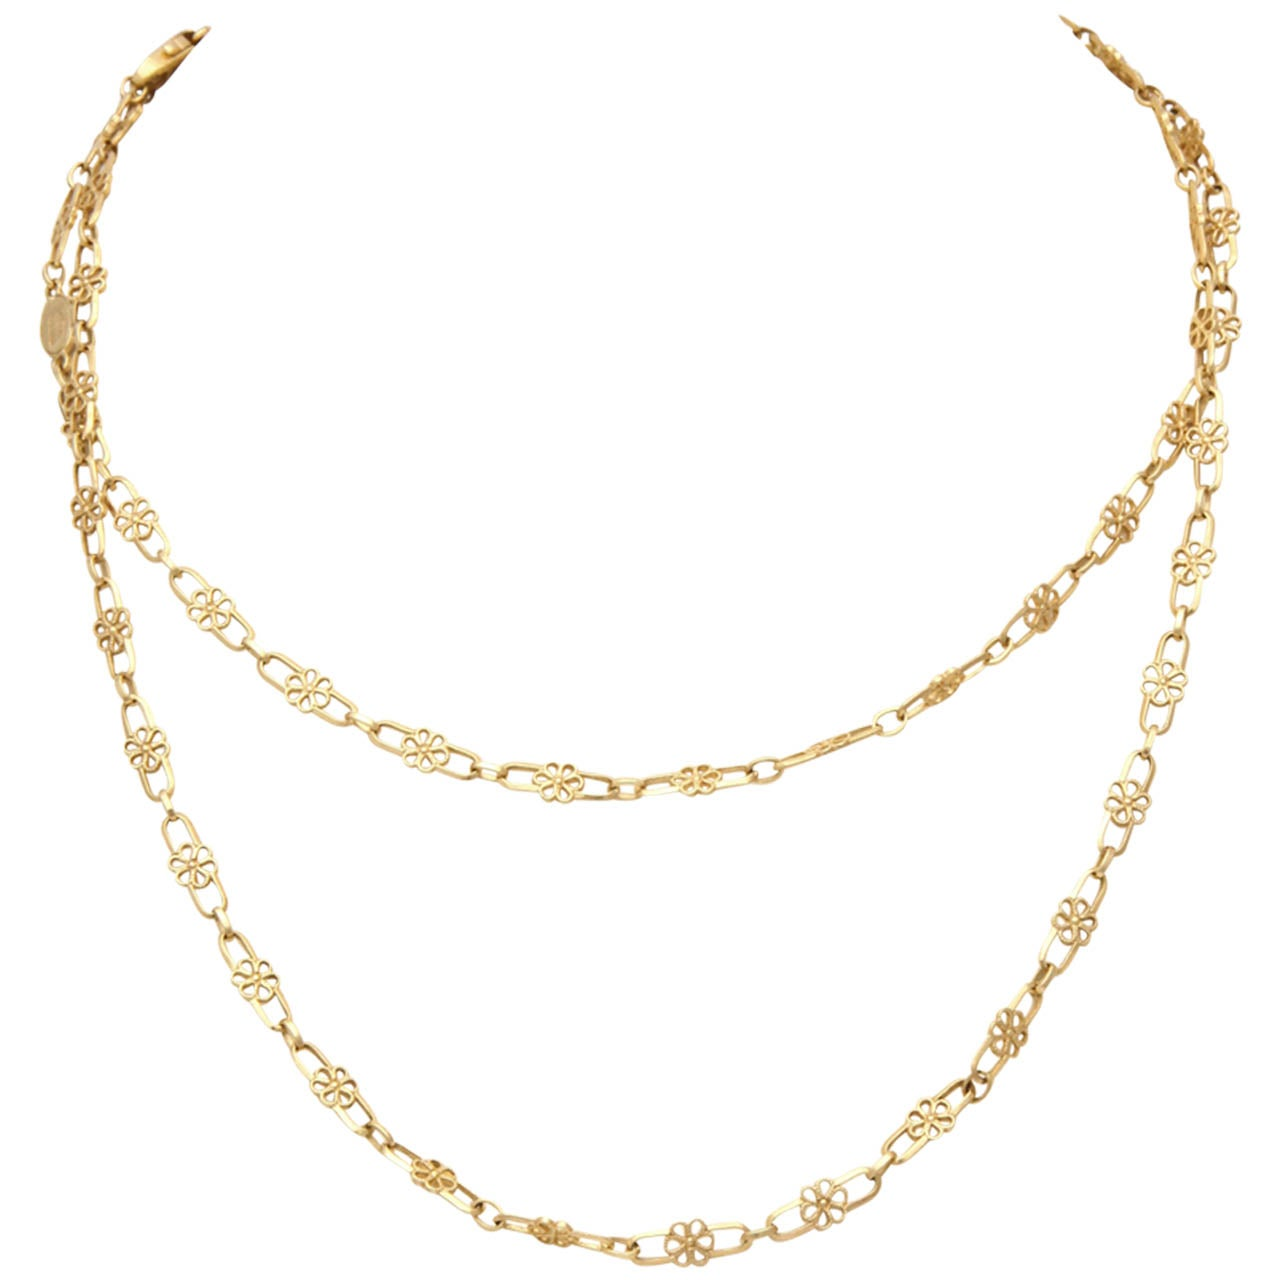 1950's Gold Open Link Delicate Floral Chain Necklace 1